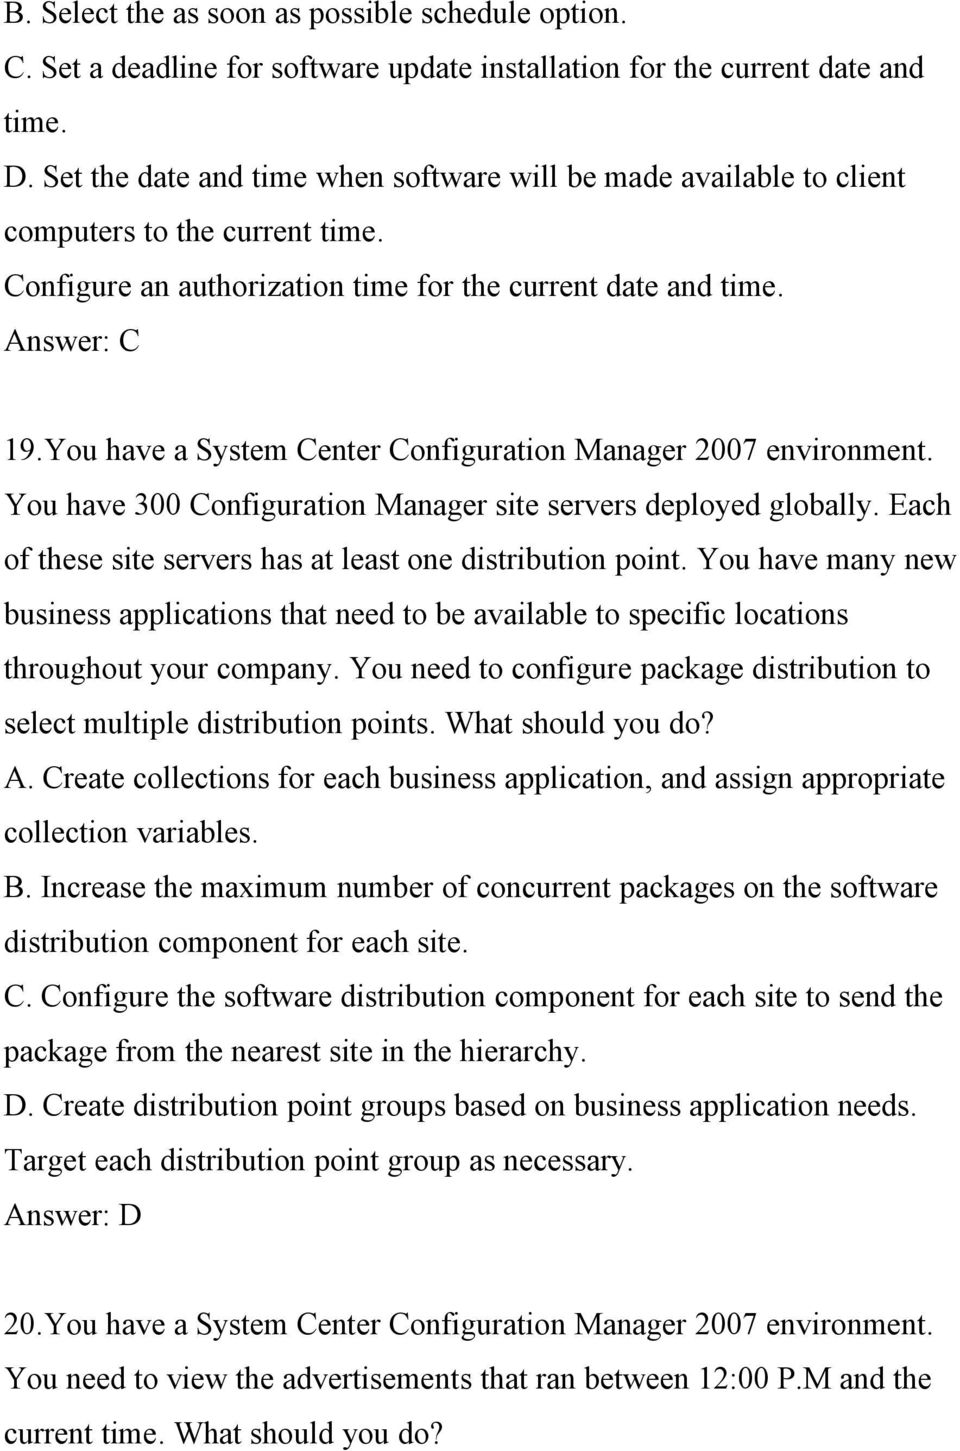 You have a System Center Configuration Manager 2007 environment. You have 300 Configuration Manager site servers deployed globally. Each of these site servers has at least one distribution point.